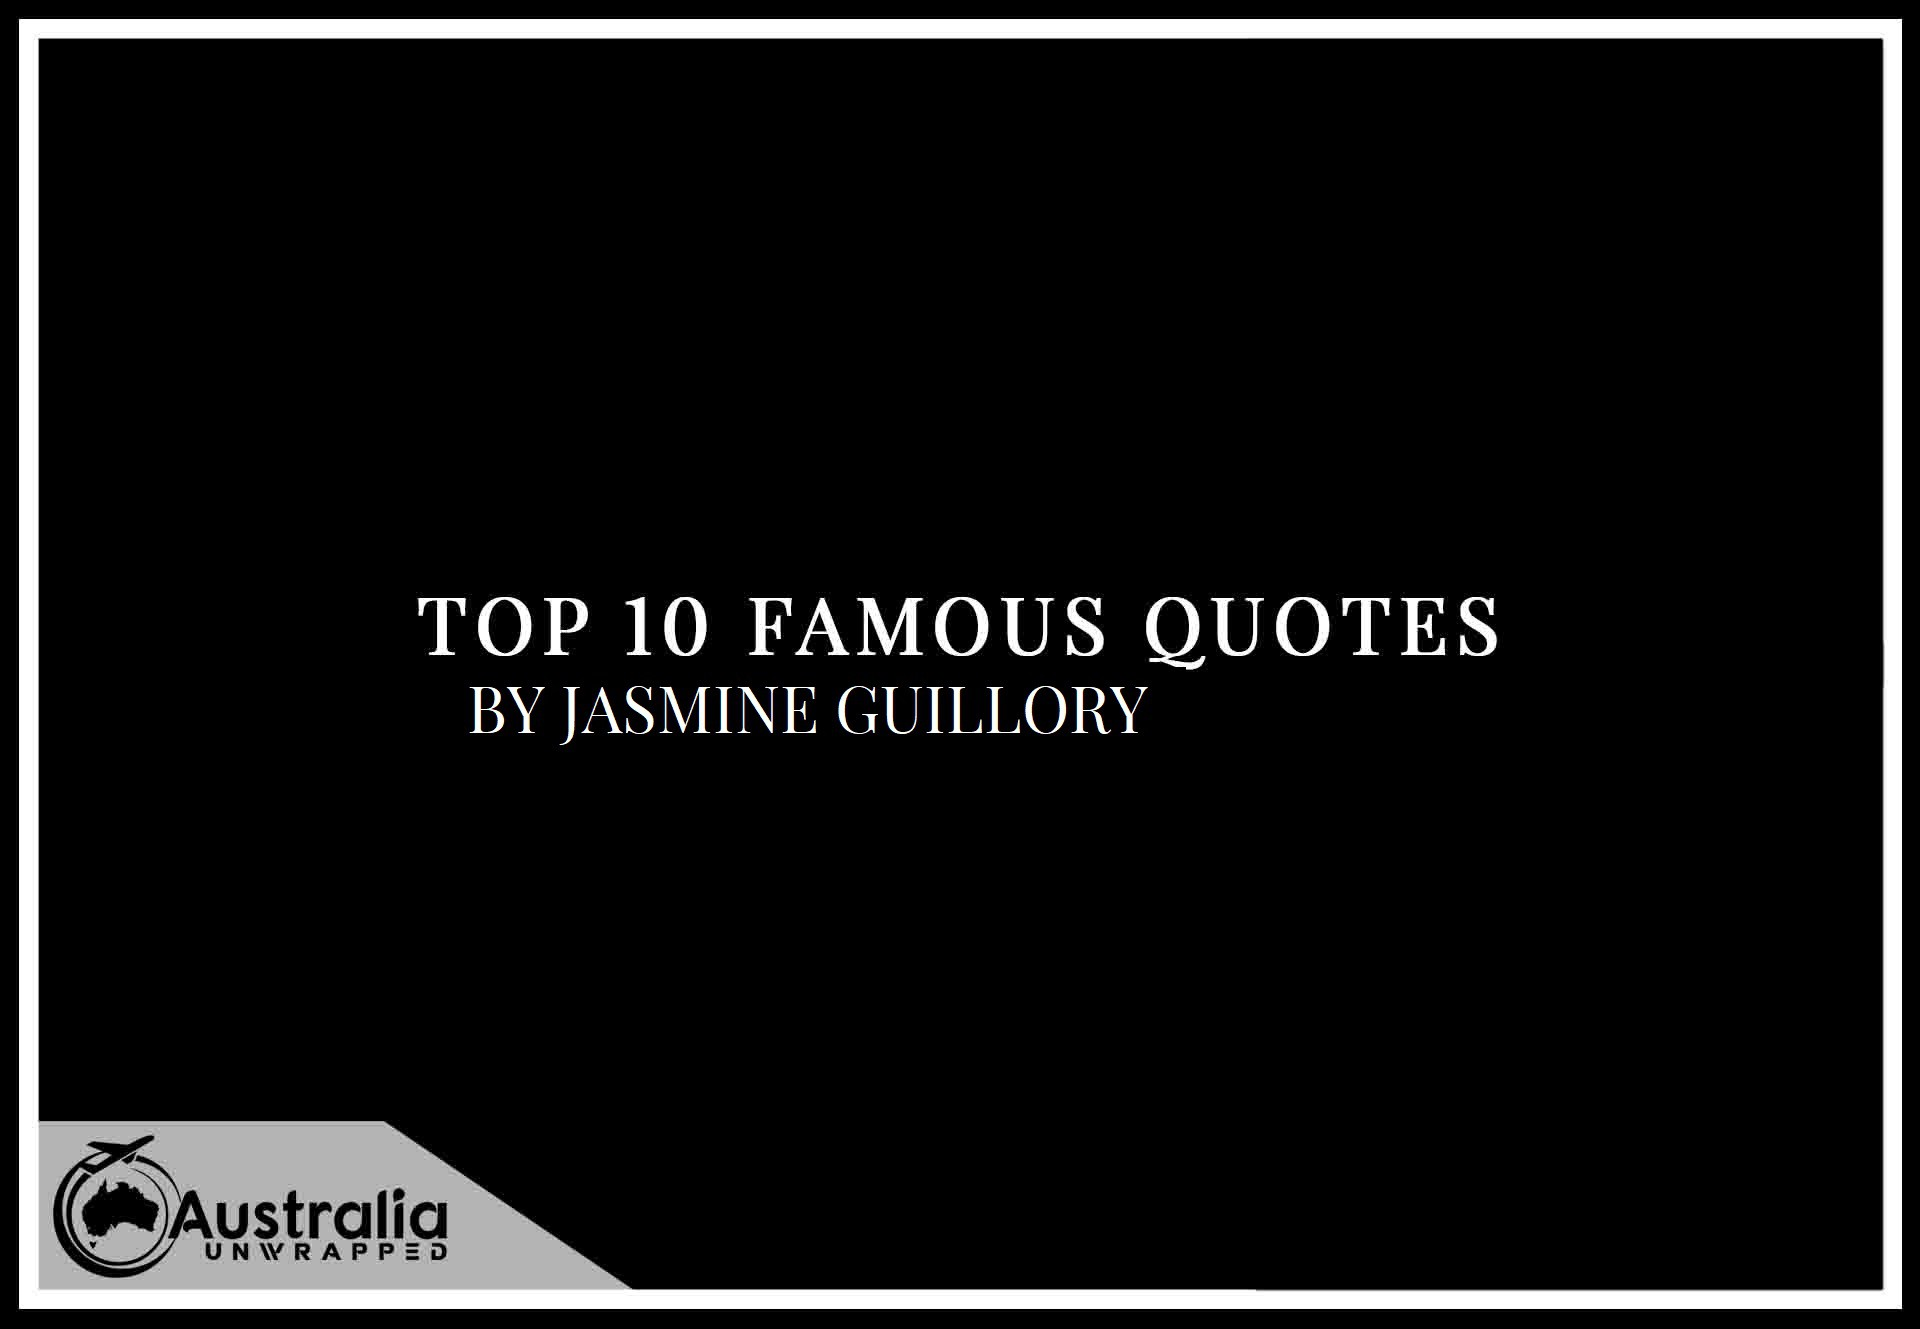 Top 10 Famous Quotes by Author Jasmine Guillory